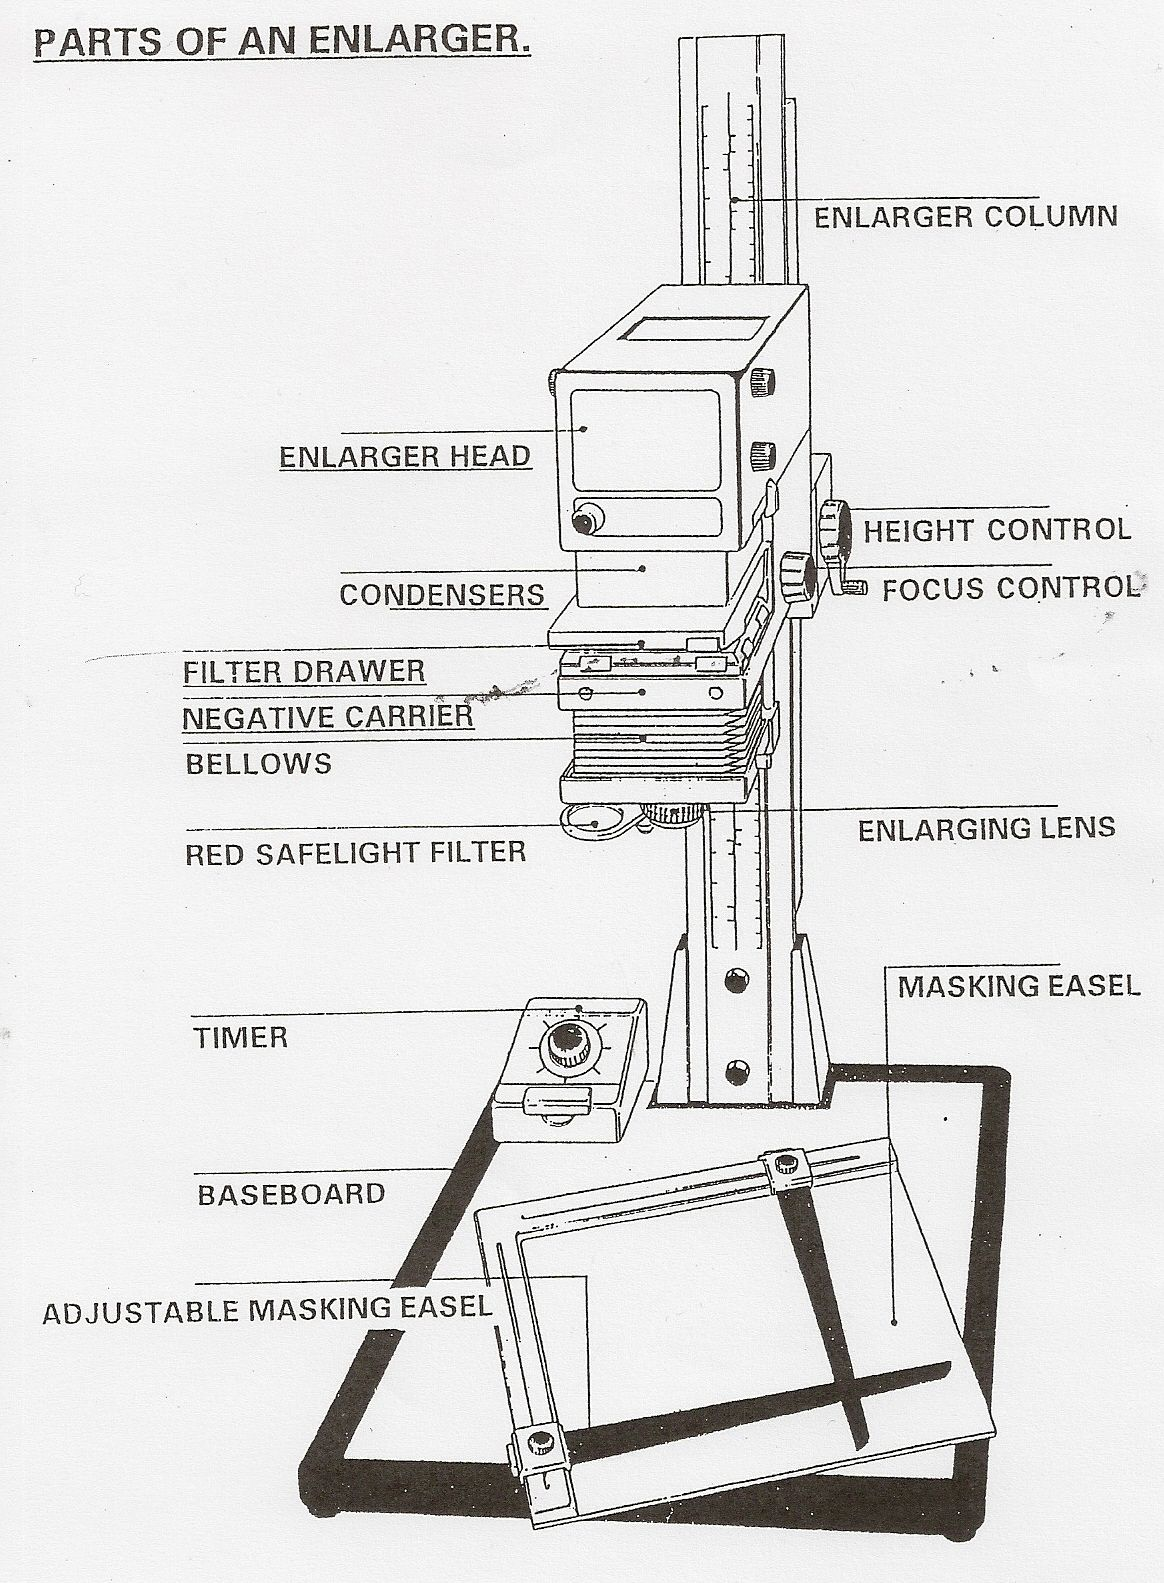 Parts Of An Enlarger